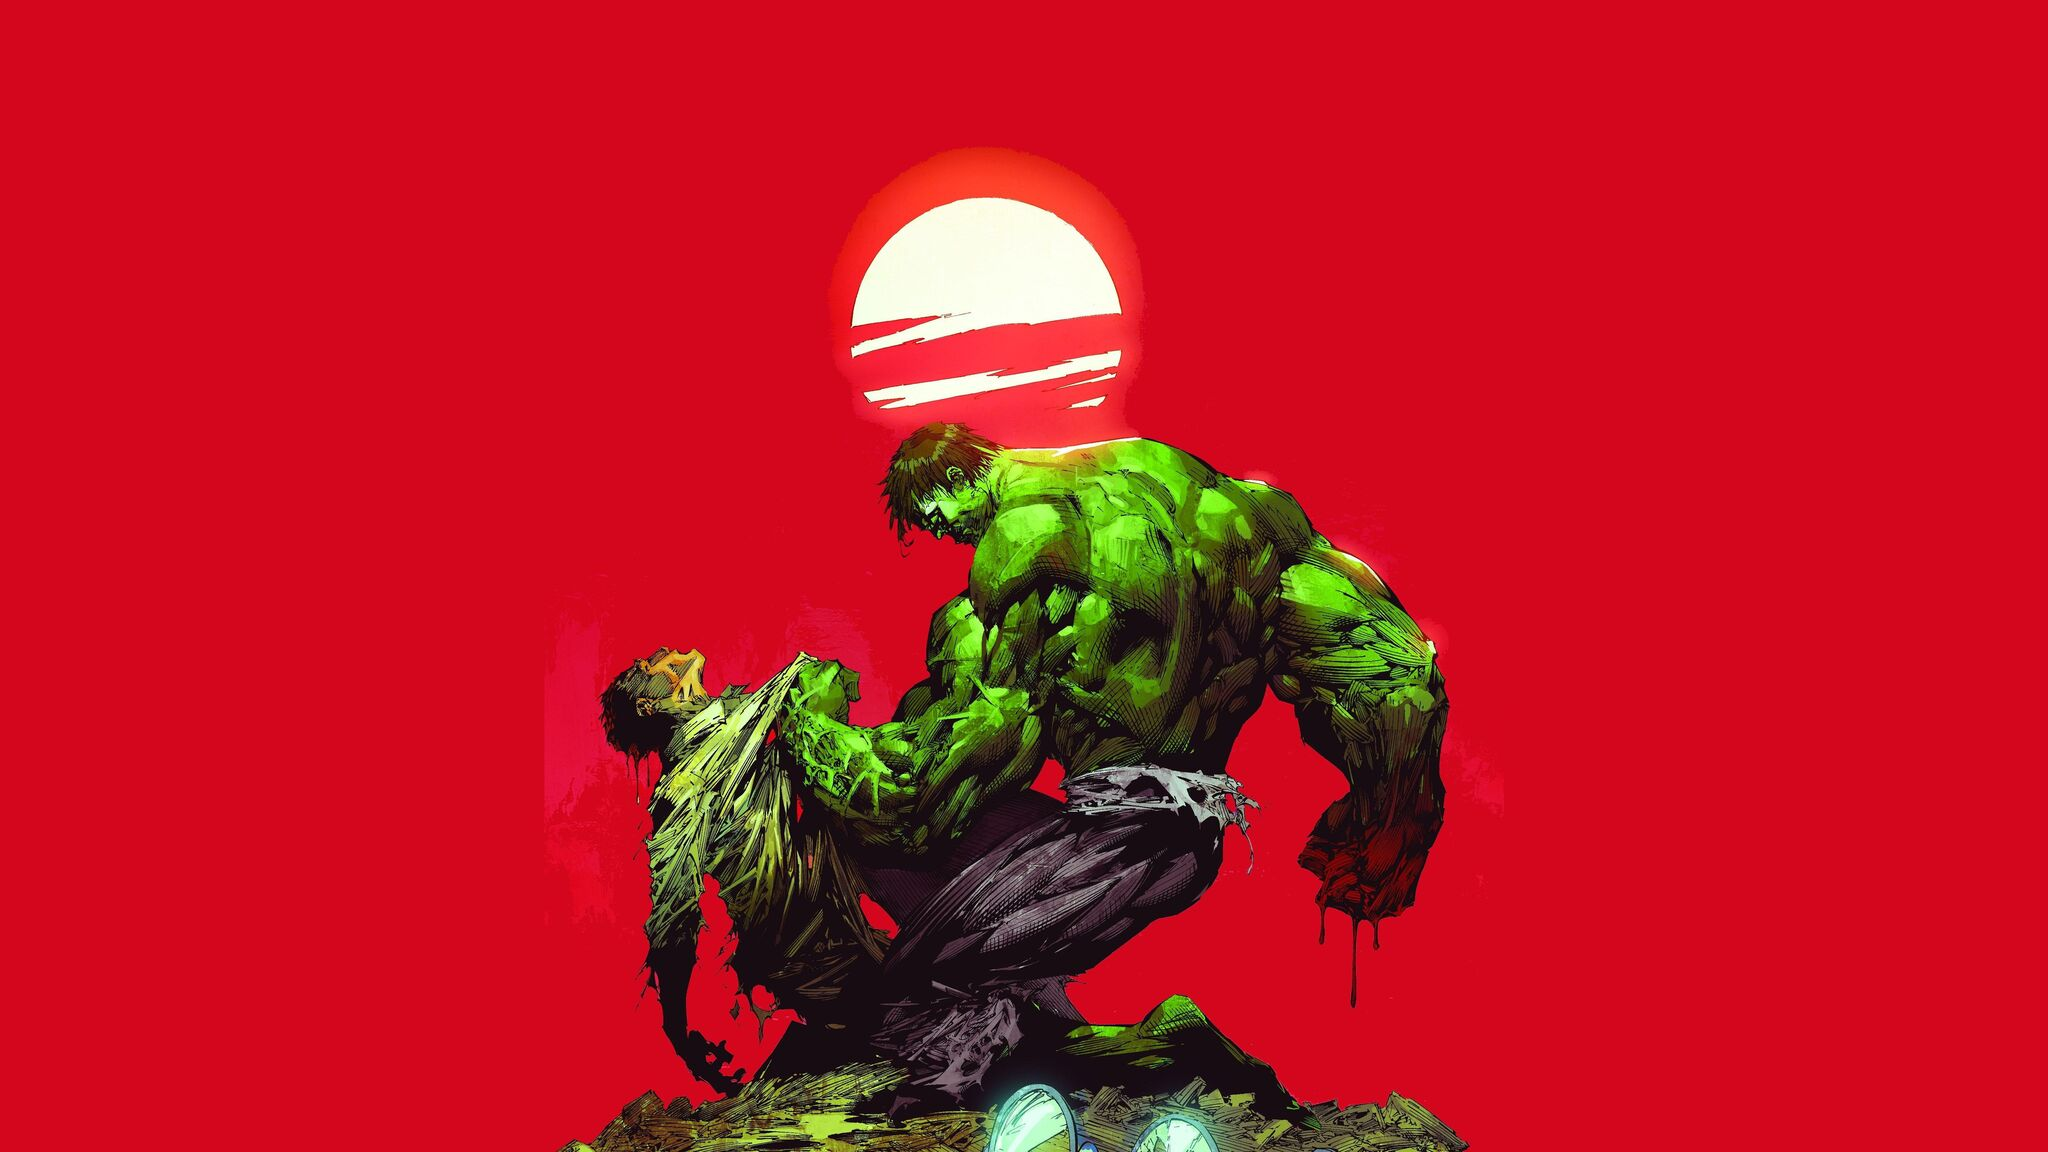 2048x1152 Bruce Banner Vs The Hulk 5k 2048x1152 Resolution